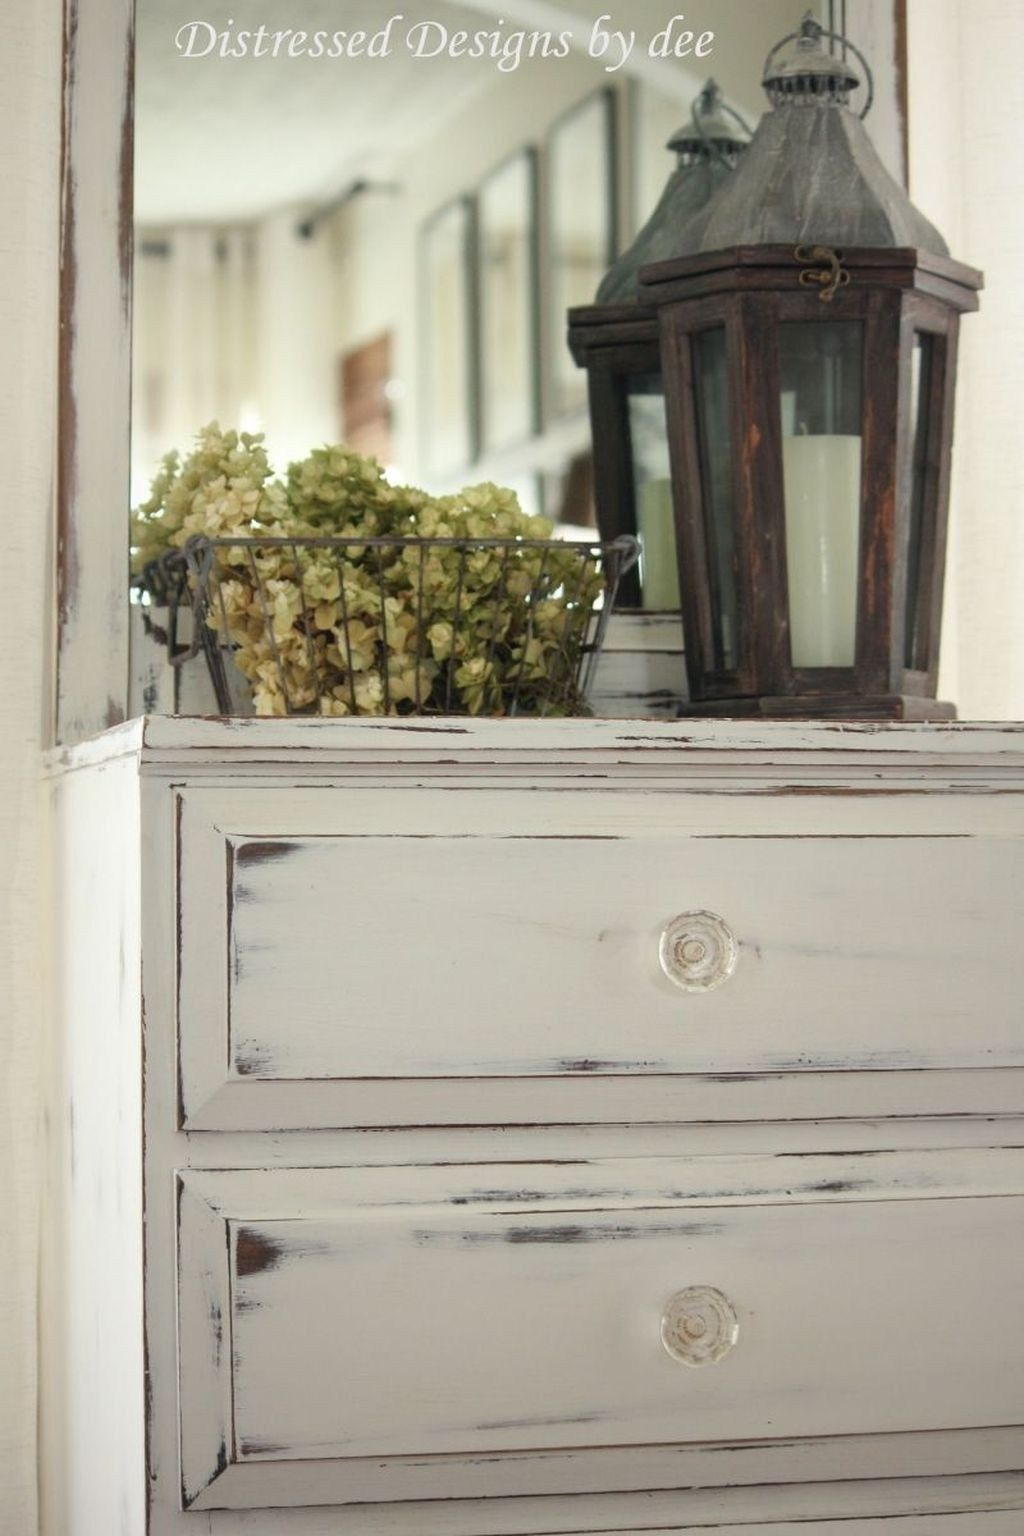 Ideas for using distressed furniture to   create an impressive interior design